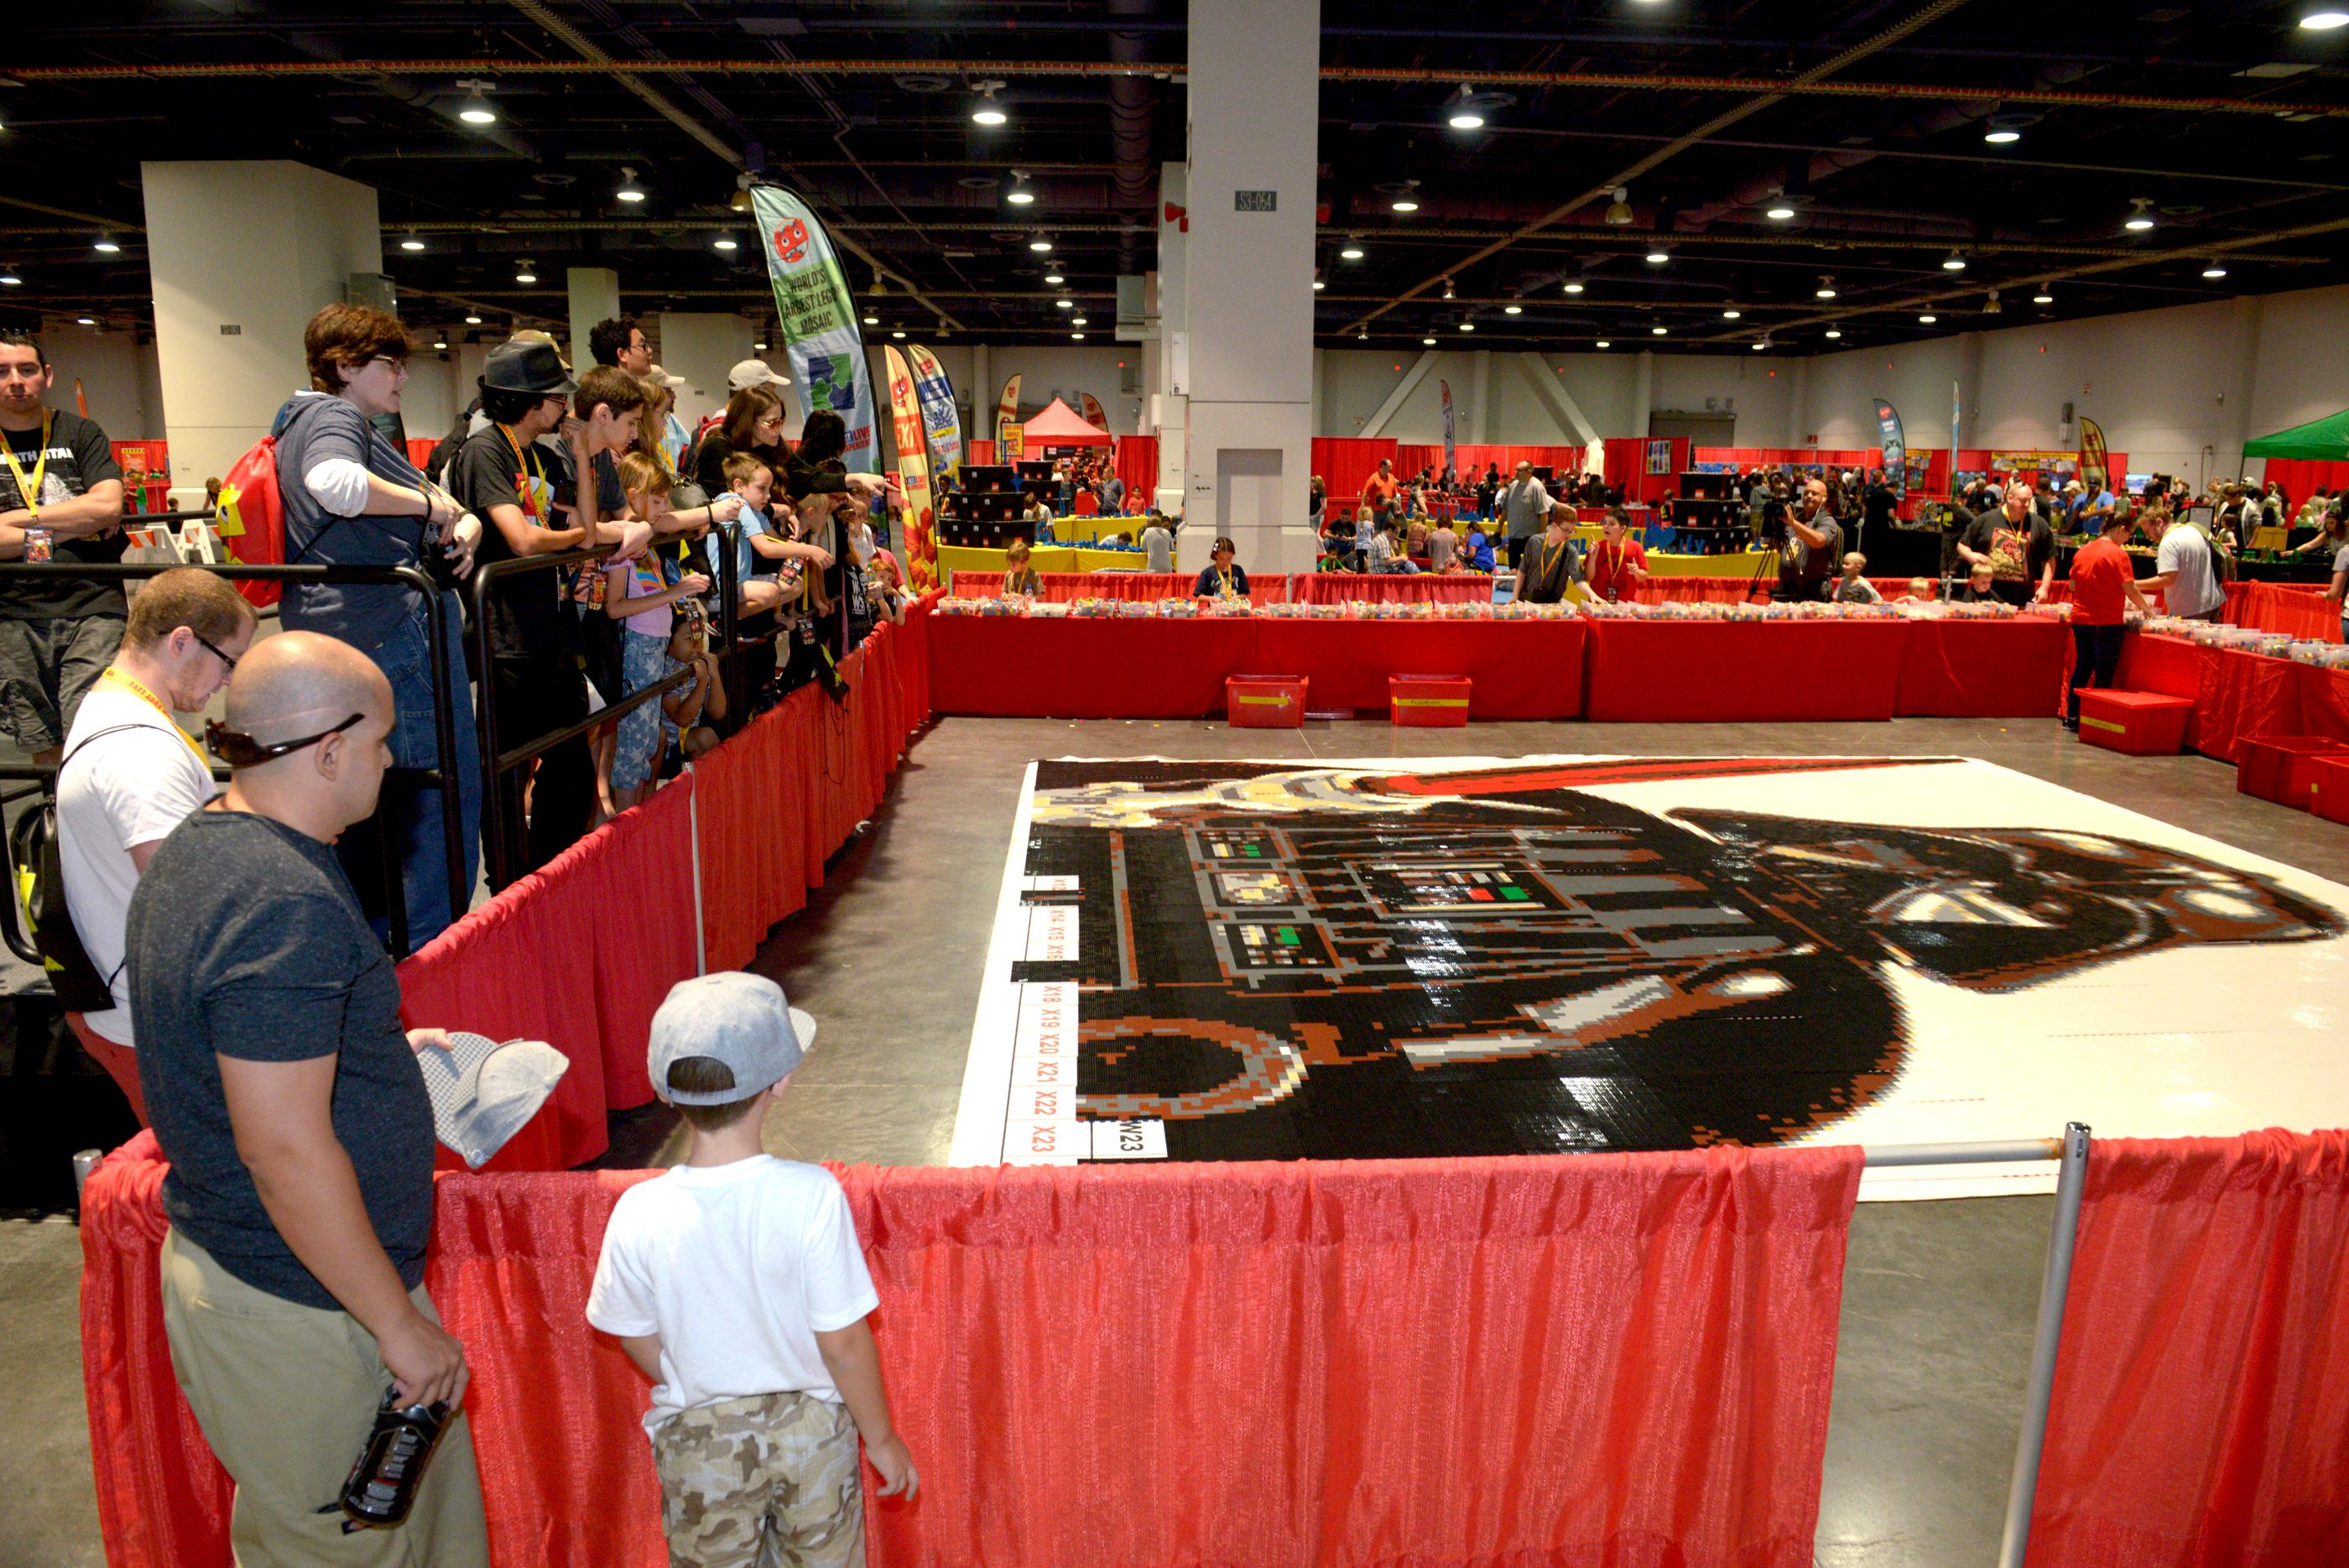 Fans watch as teams fit the last few pieces of the world's largest Lego mosaic together during the Brick Fest Live Lego Fan Experience at the Las Vegas Convention Center, September 9, 2017. [Glenn Pinkerton/Las Vegas News Bureau]